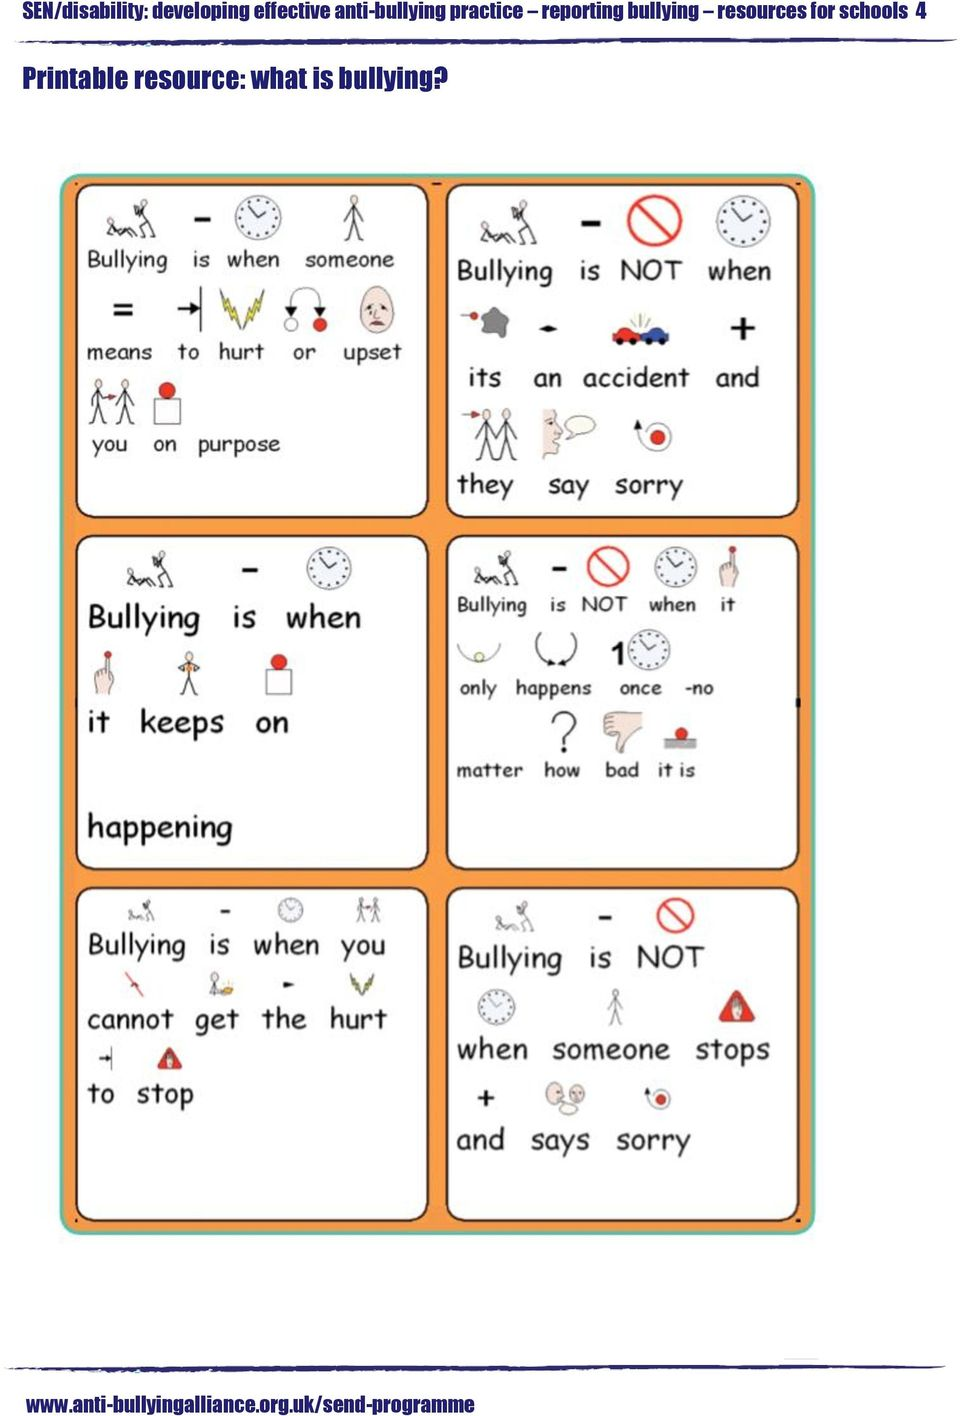 reporting bullying resources for